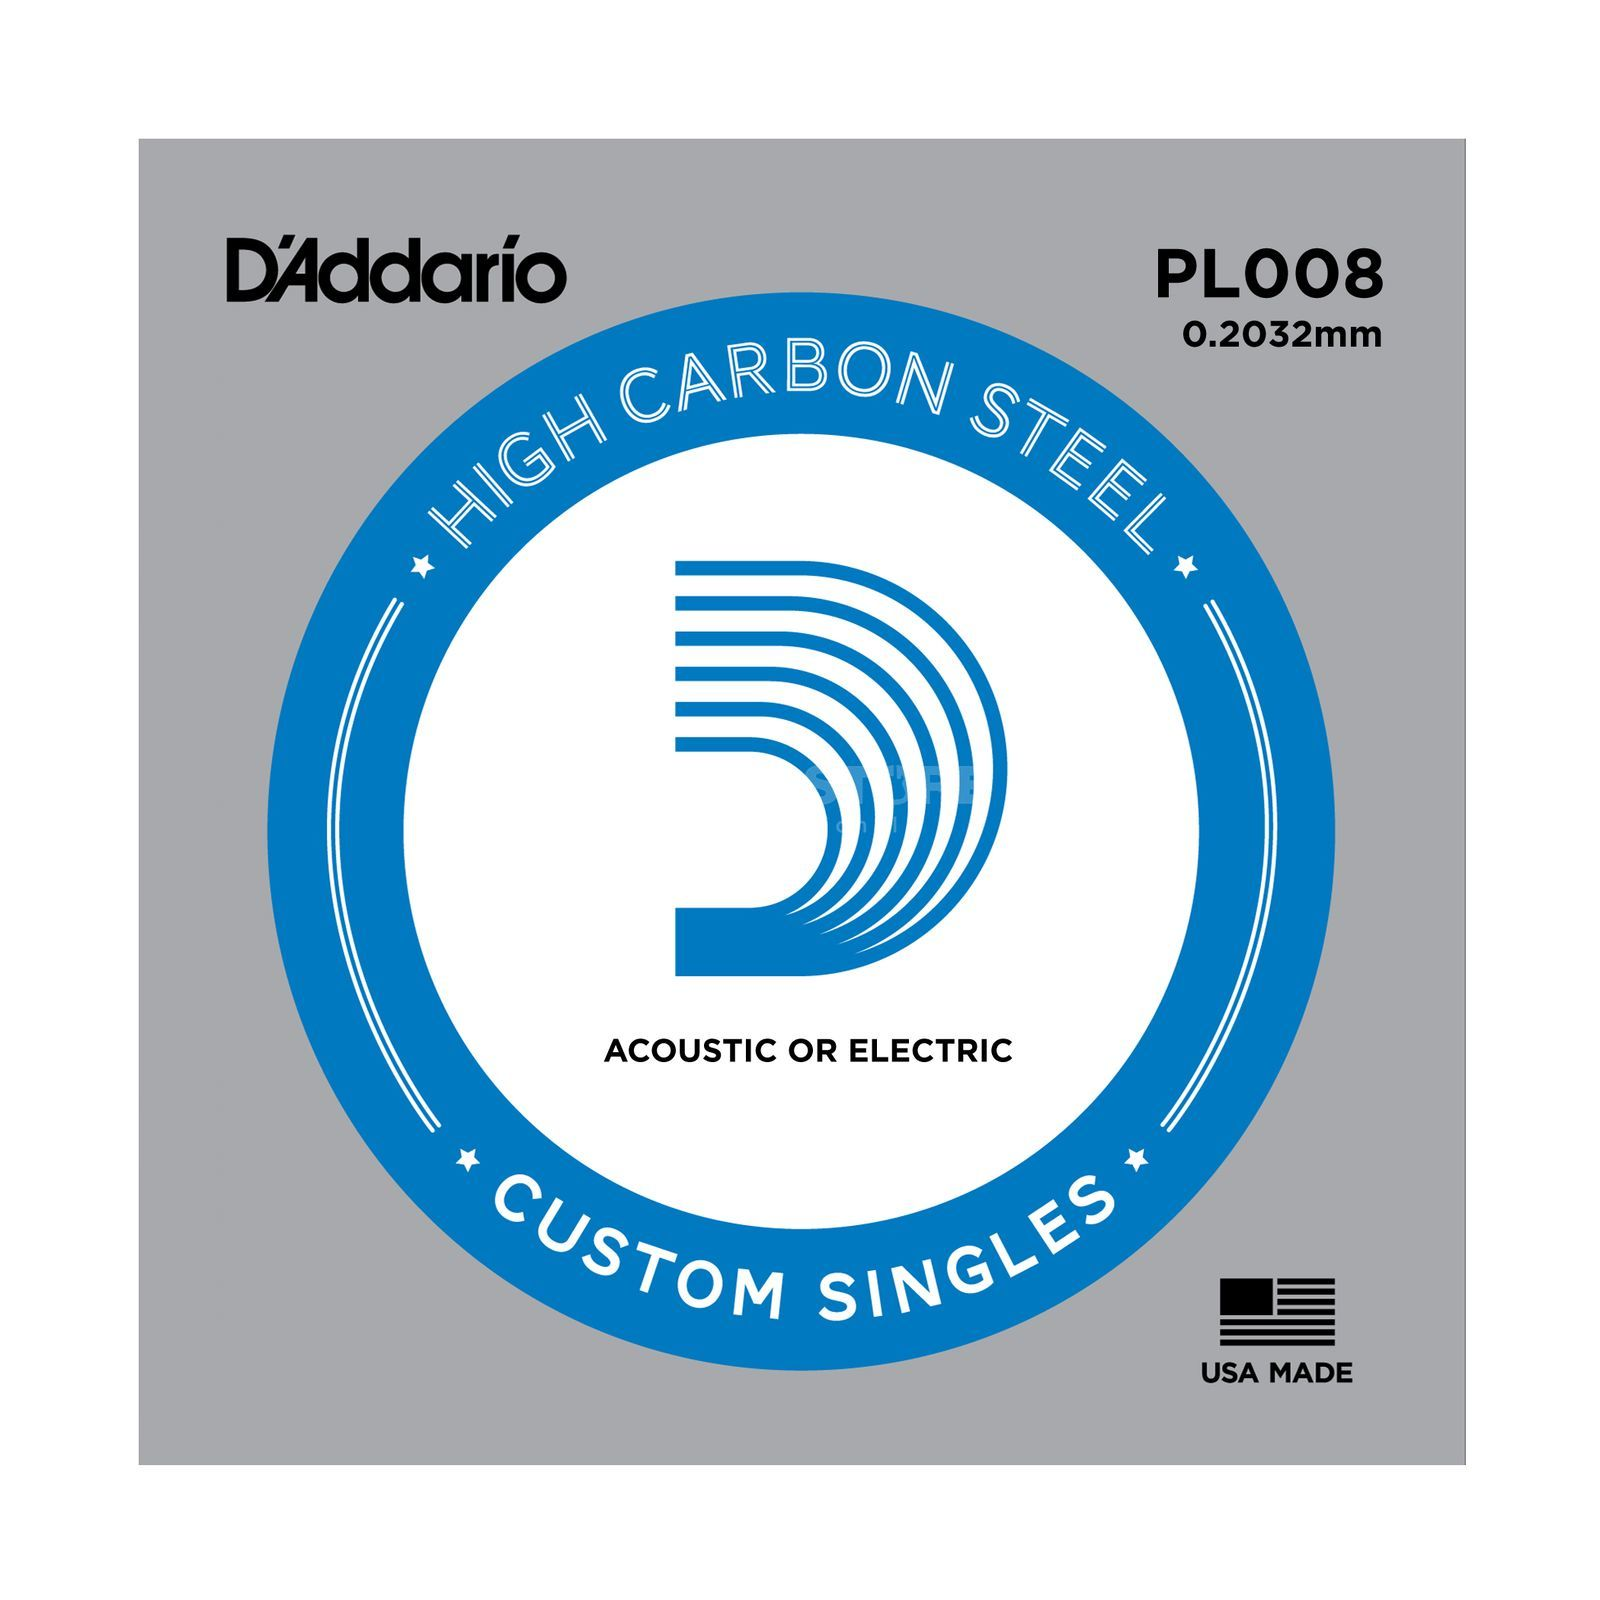 D'Addario Single String PL008 Plain  Изображение товара